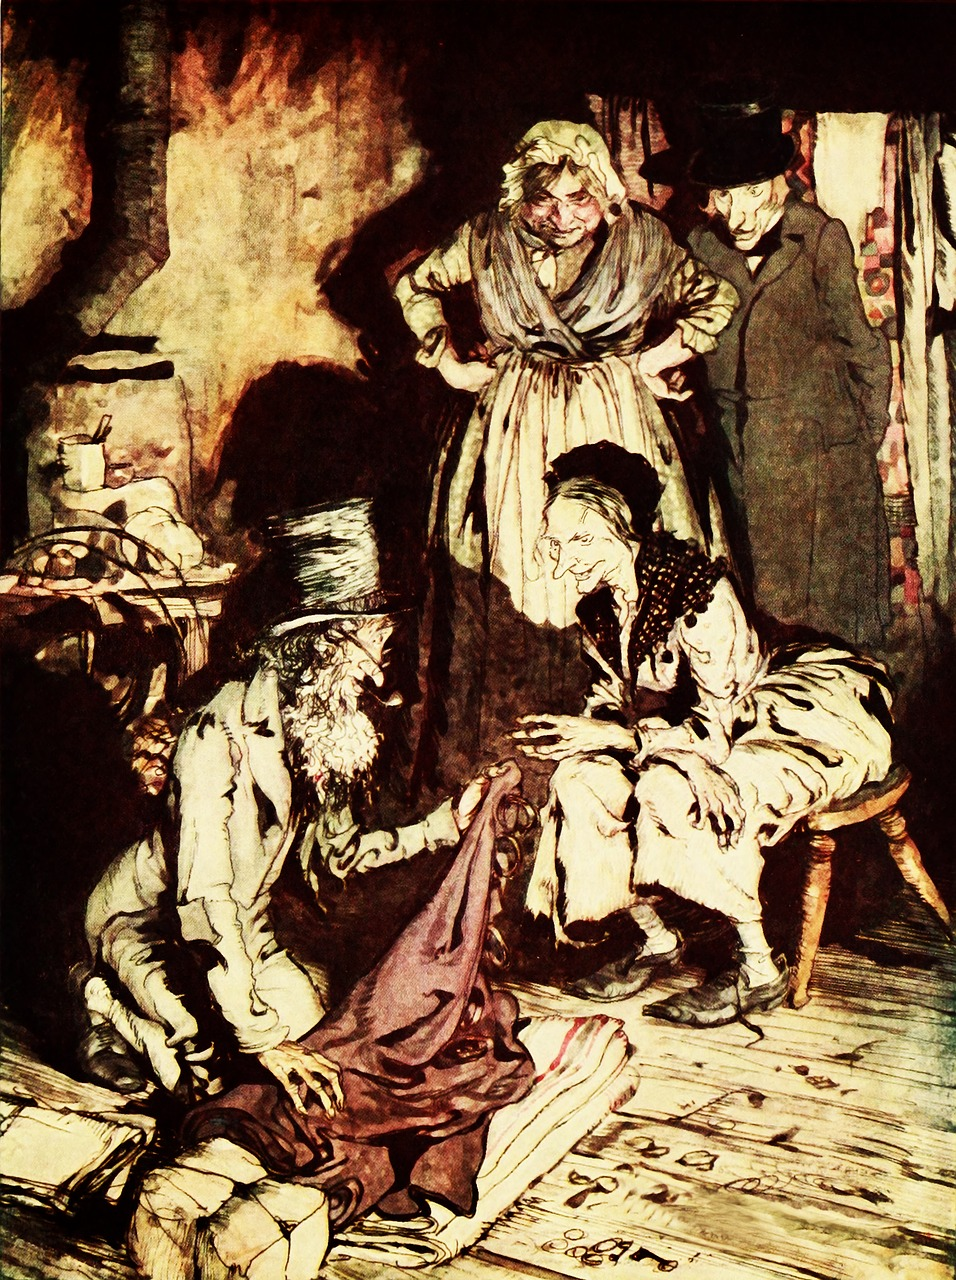 Counting out Scrooge's belongings when he is thought to be dead - a vision shown to Scrooge by the Ghost of Christmas Yet to Come - Pixabay